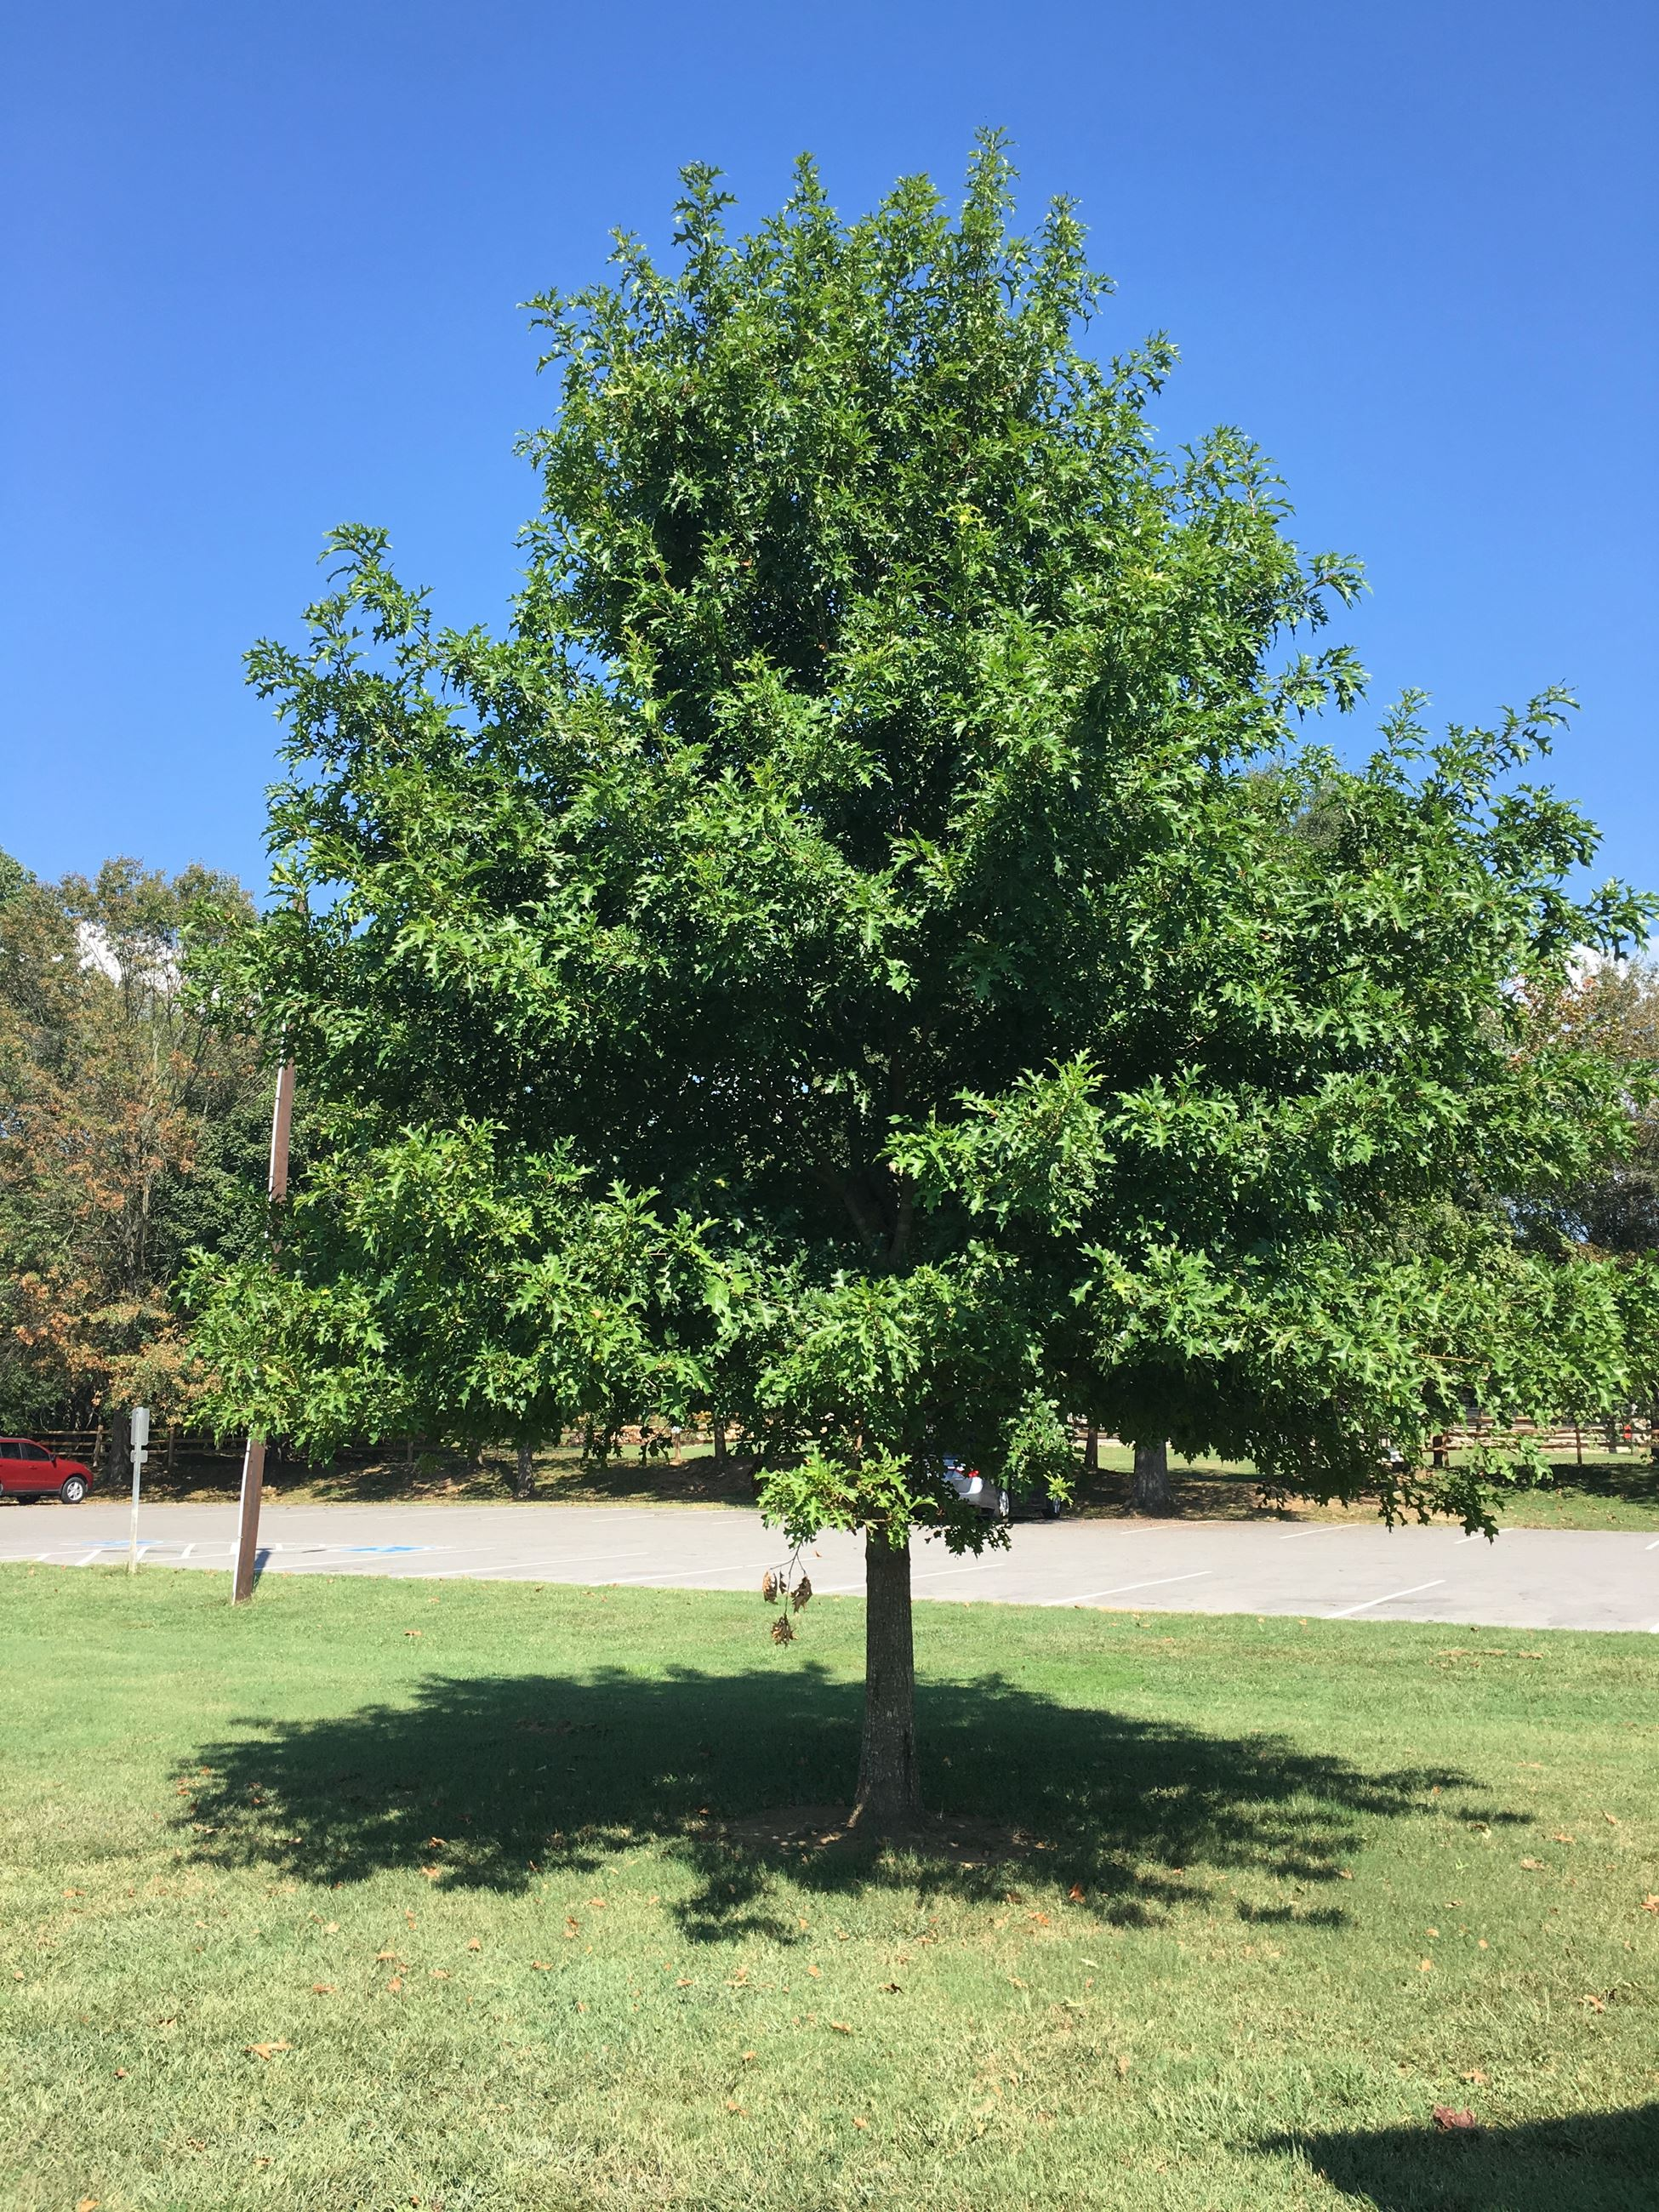 Cherrybark Oak by ball field